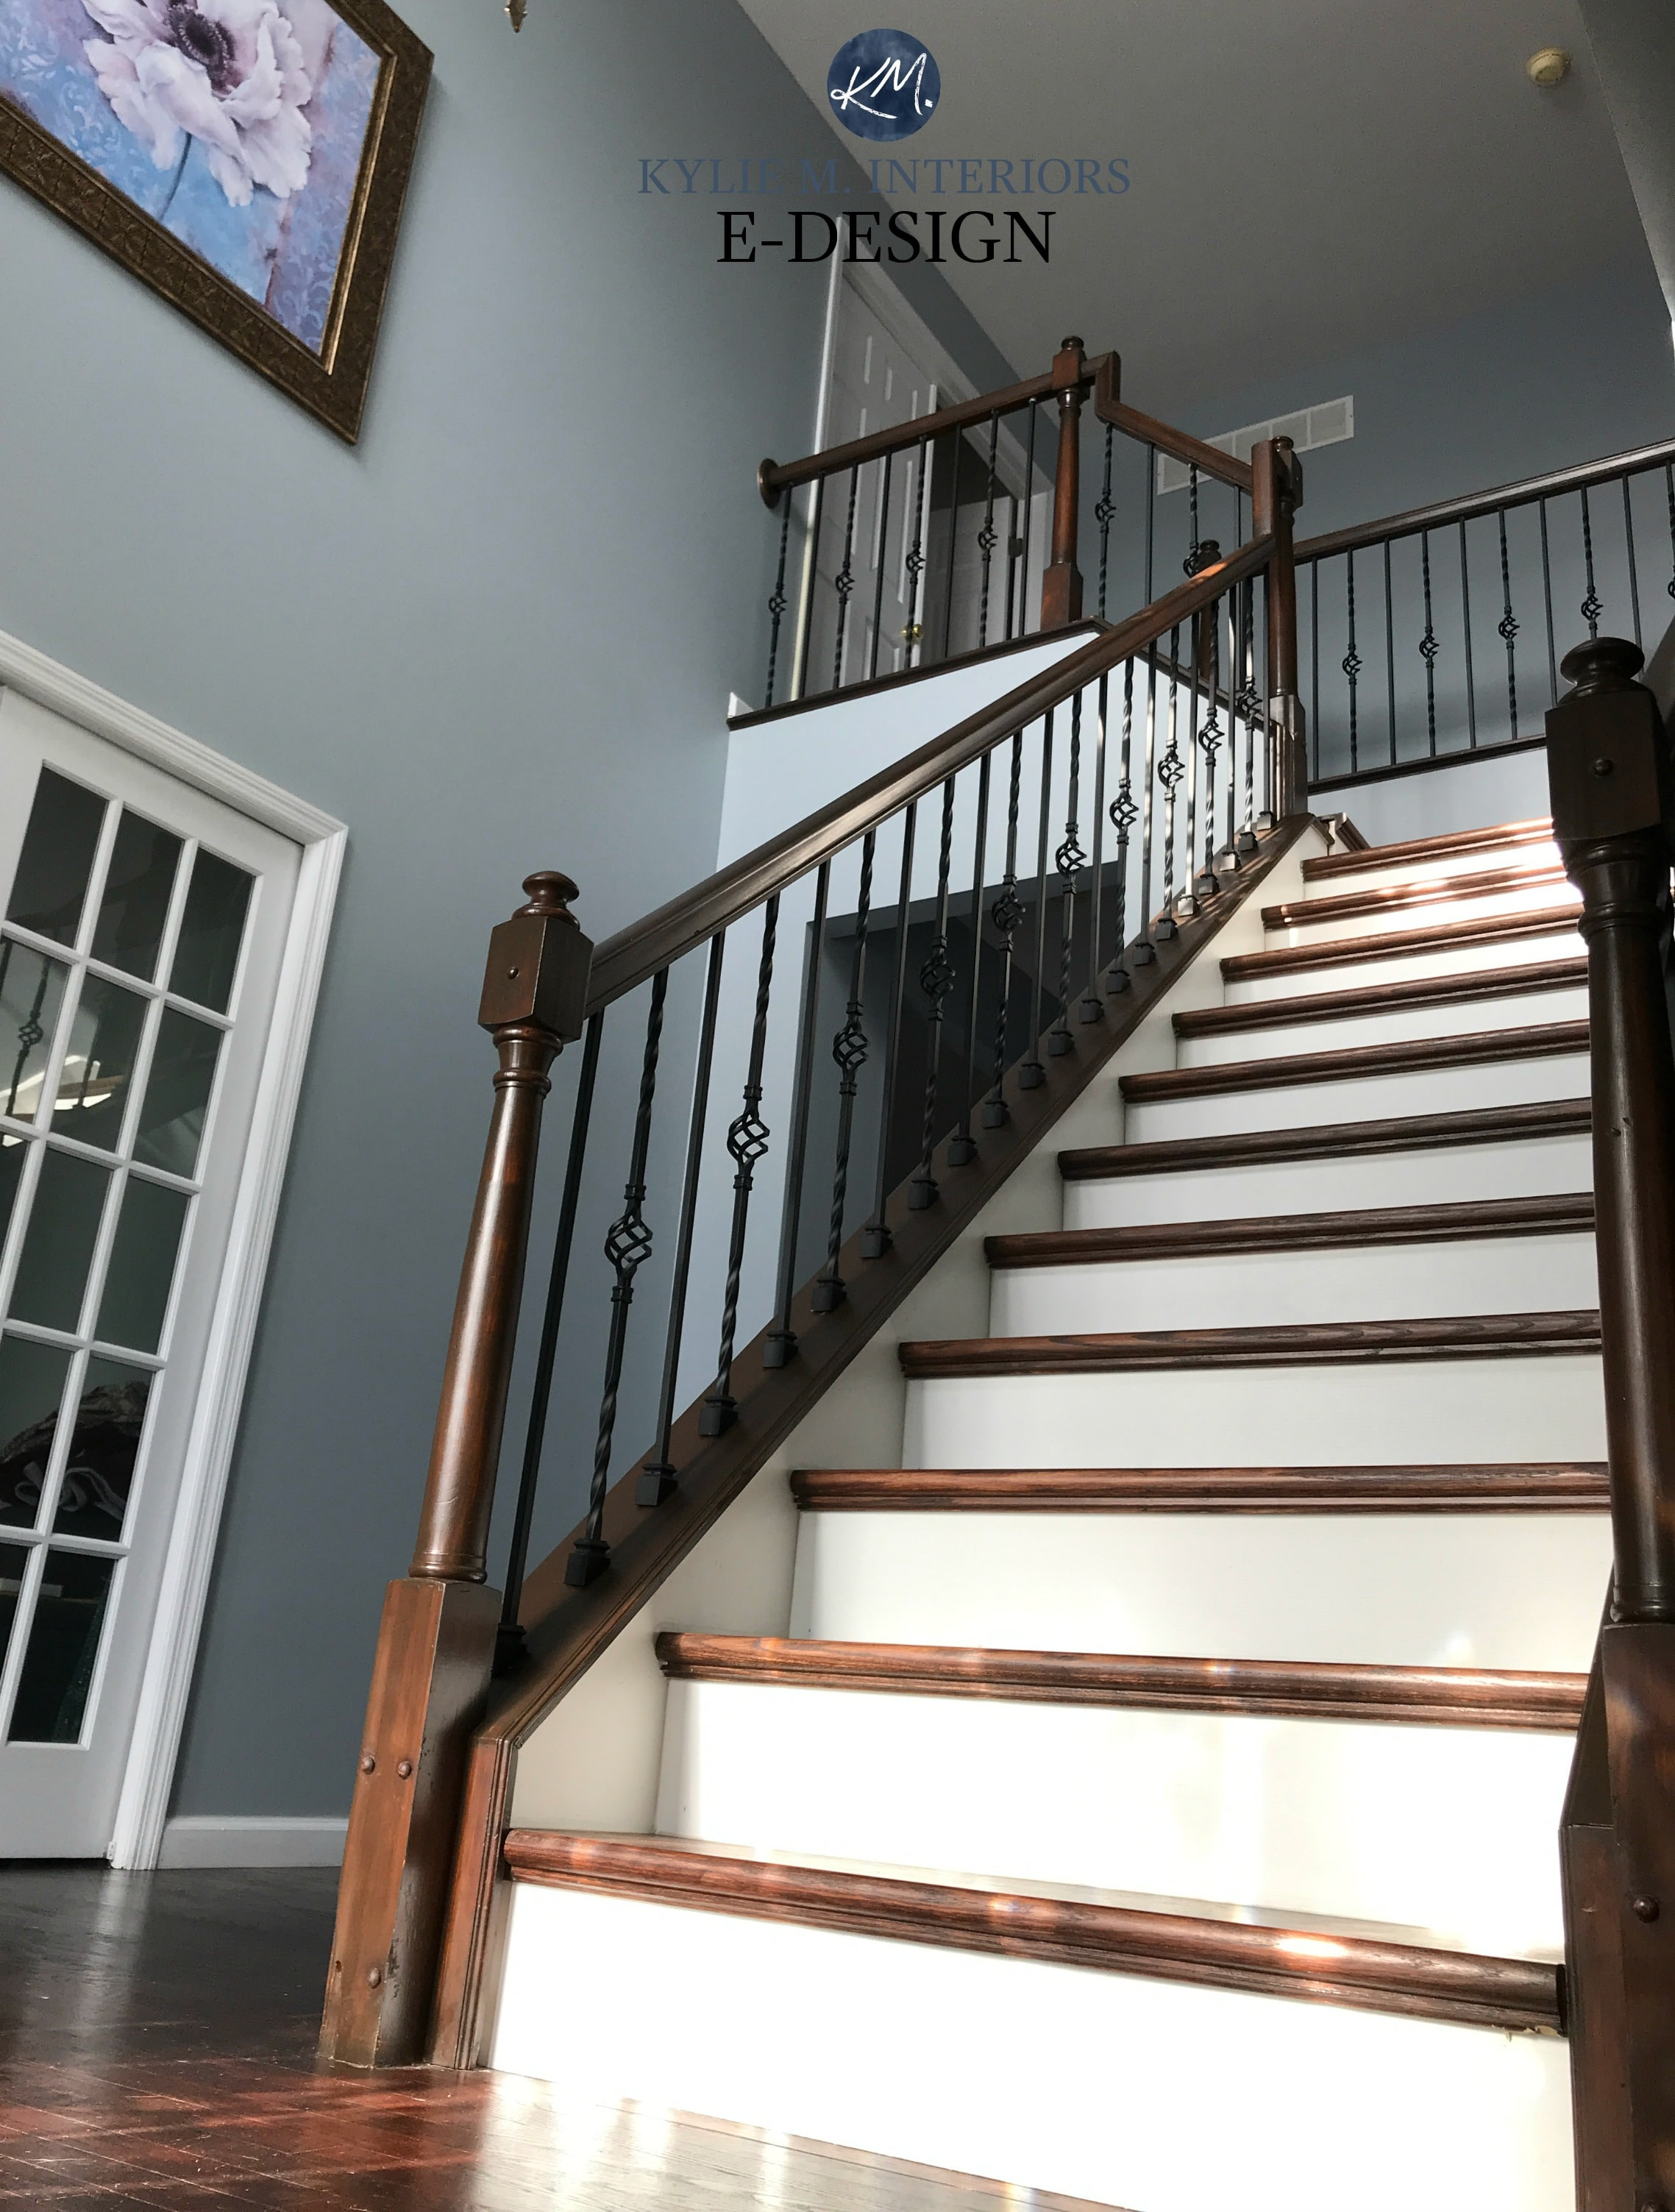 Cool Blue Paint Sherwin Williams Jubilee In 2 Storey Entryway Foyer With Dark Wood